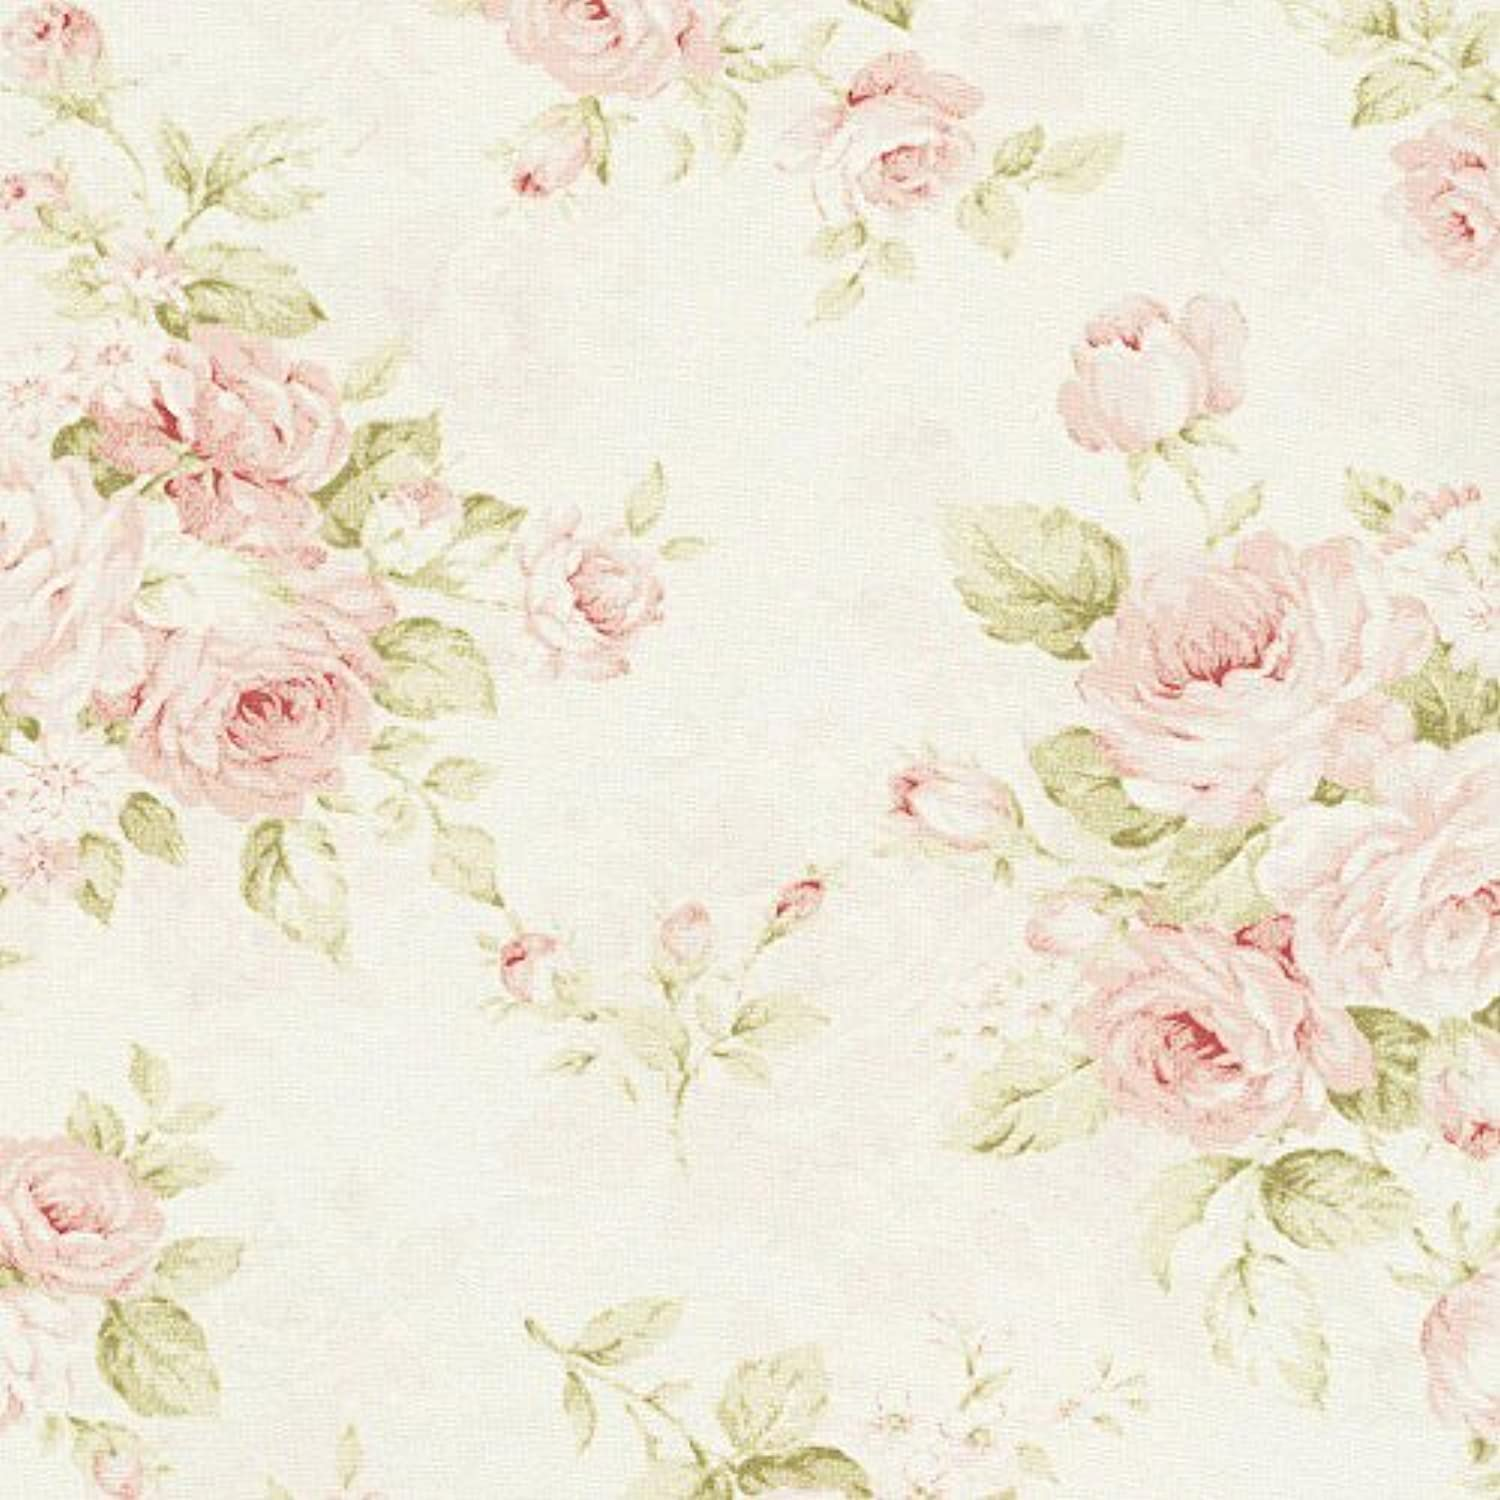 Carousel Designs Pink Floral Cradle Sheet by Carousel Designs